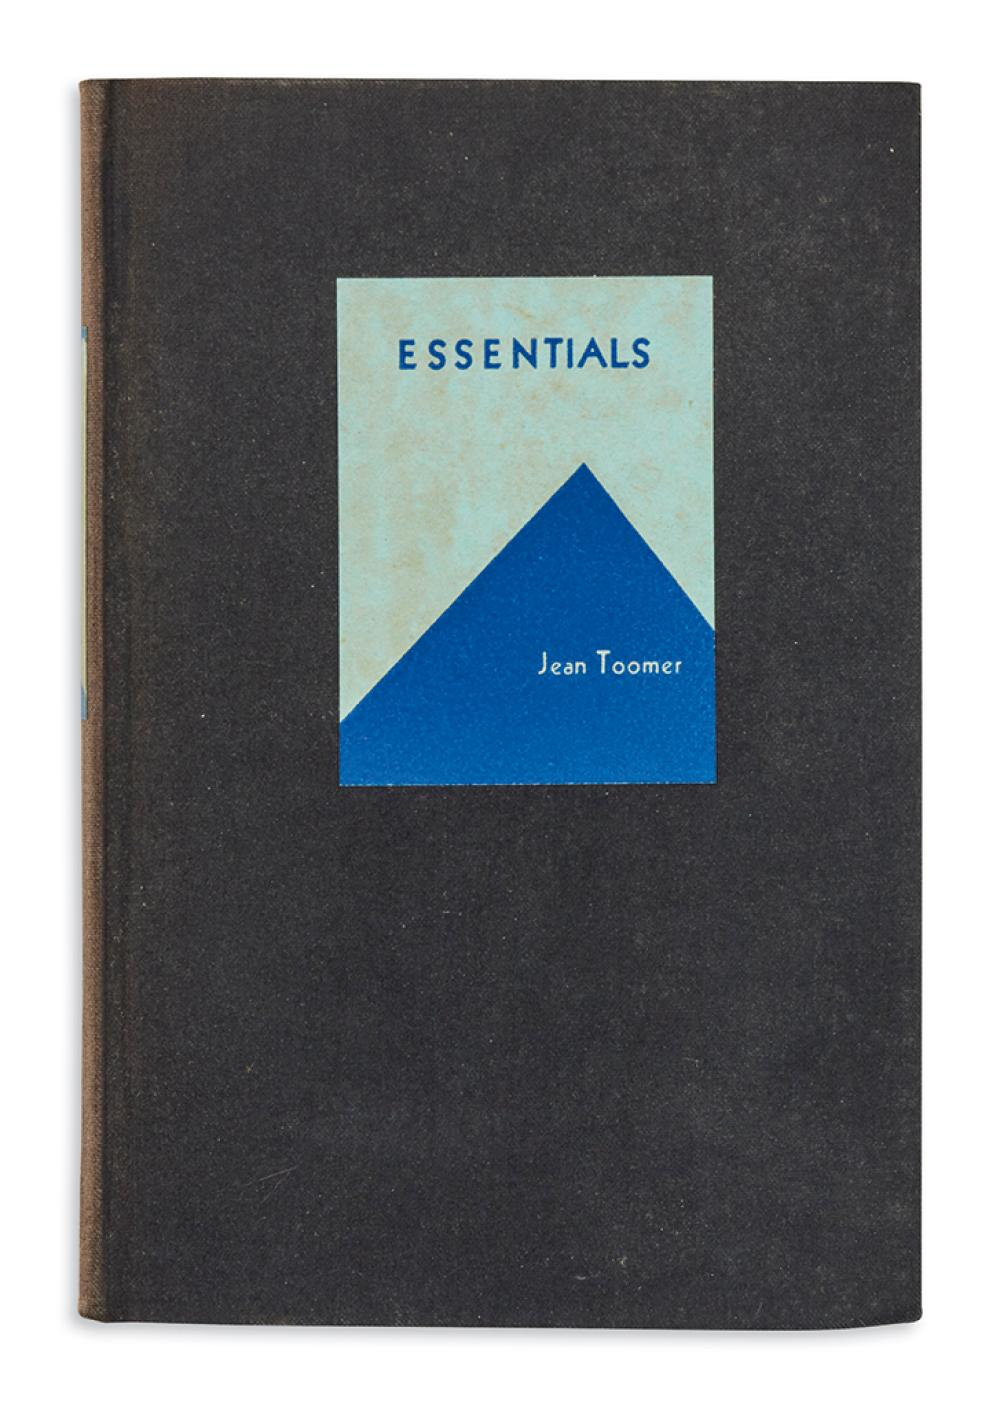 (LITERATURE.) Toomer, Jean. Essentials: Definitions and Aphorisms.